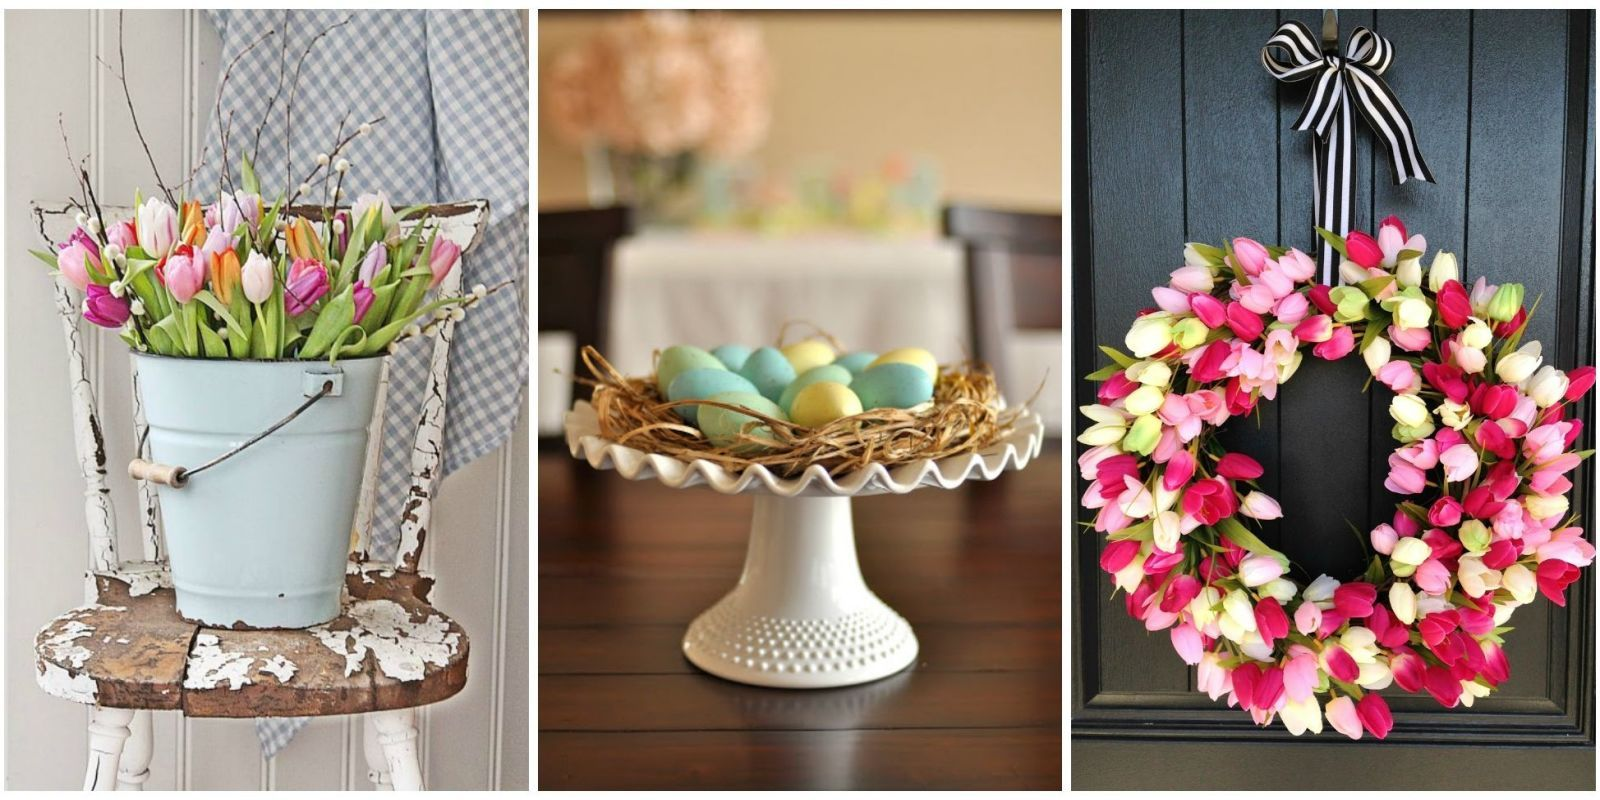 ... With White Tulips And Elegant Ribbon, Or Go Egg Centric And Add Babyu0027s  Breath Or Fragrant Florals To A Wicker Basket. Weu0027ve Got A Fresh Batch Of  Ideas ...